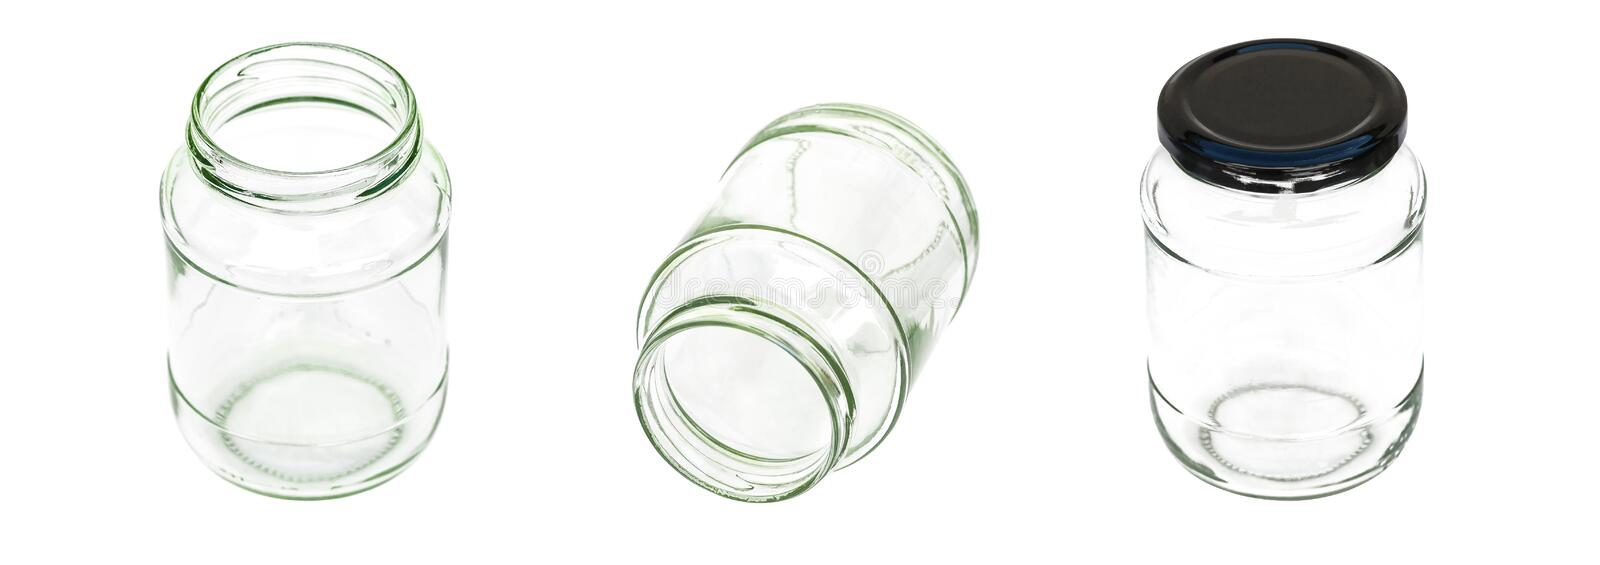 Close up glass bottle transparent blank with black lid isolated on white background. stock images